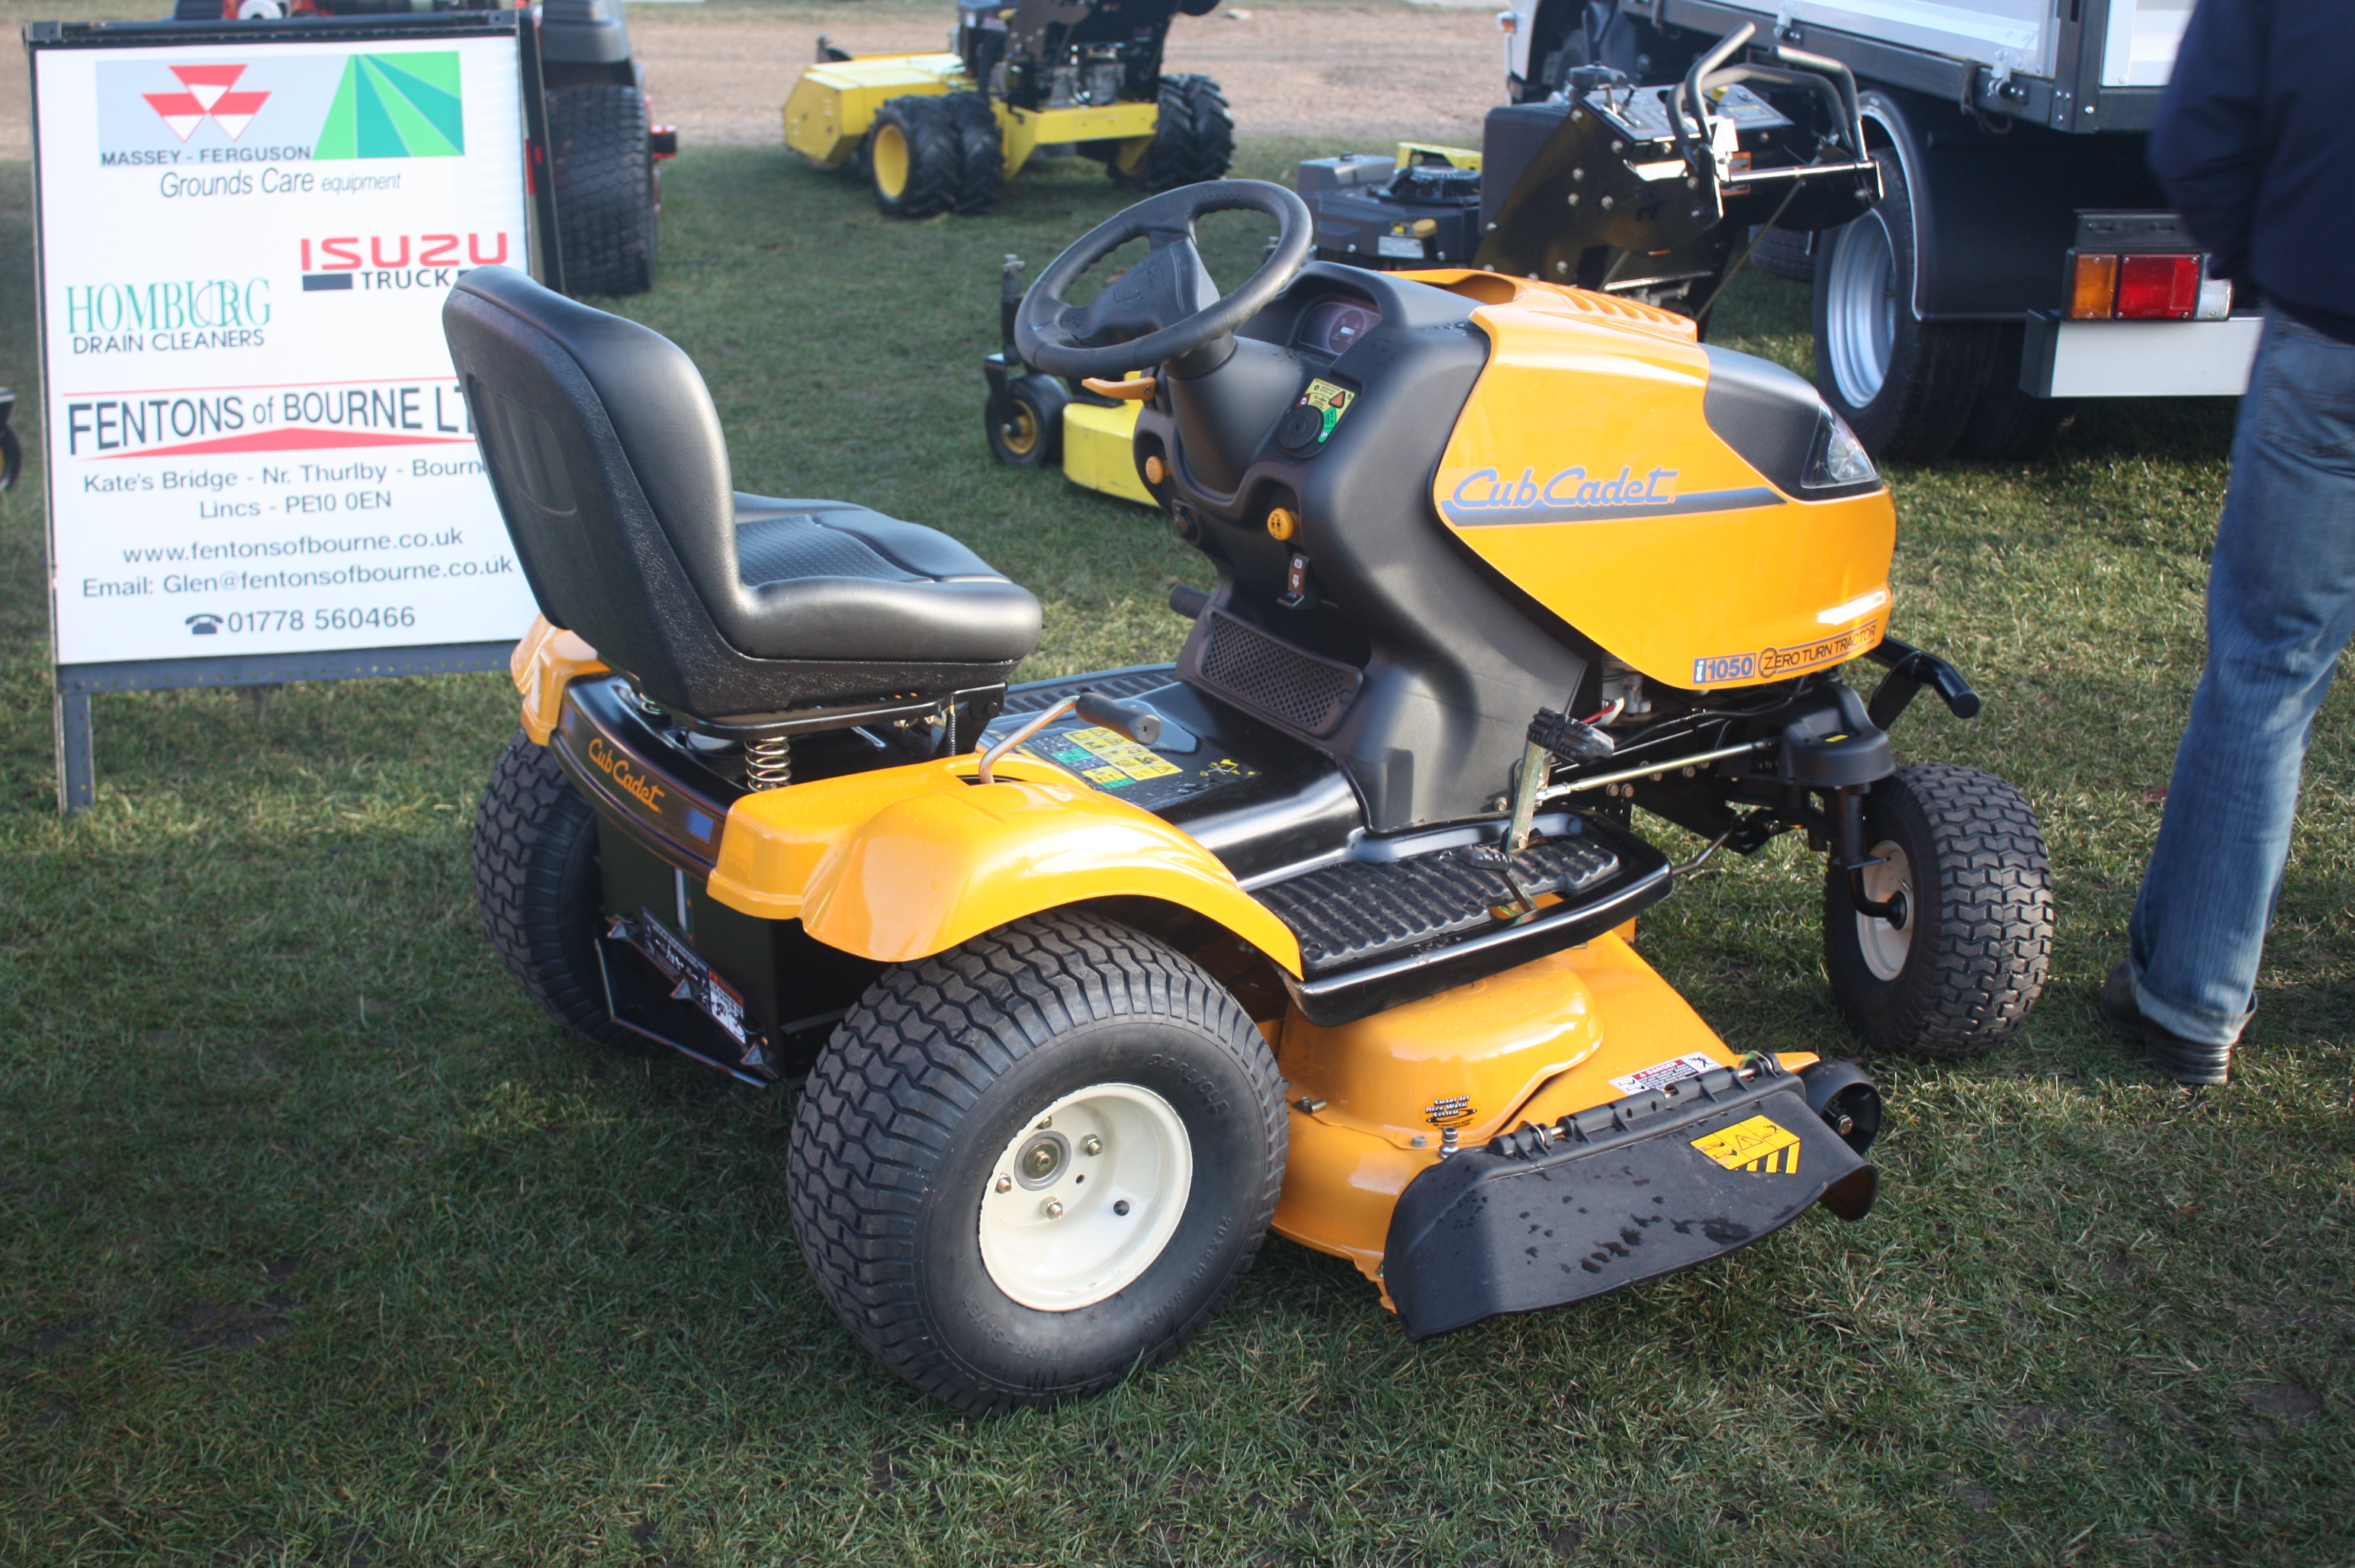 Cub Cadet 1515 Wiring Diagram Free Download Diagrams 1862 680 Tractor Construction Plant Wiki Fandom Powered By 49 At